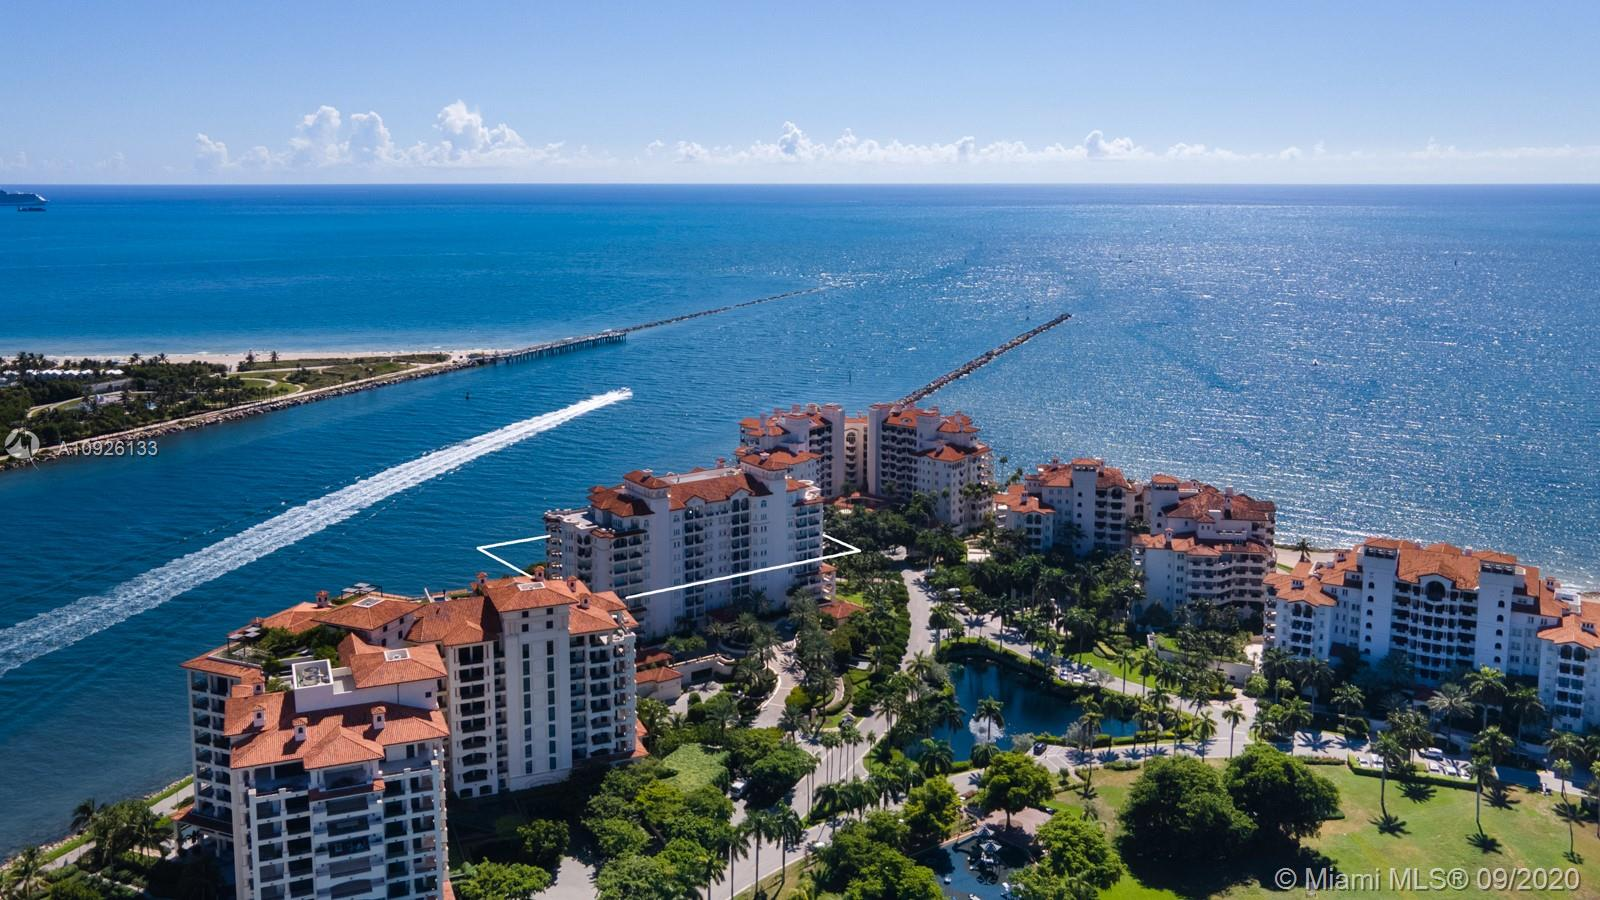 7122 Fisher Island Dr, Unit #7122 Luxury Real Estate